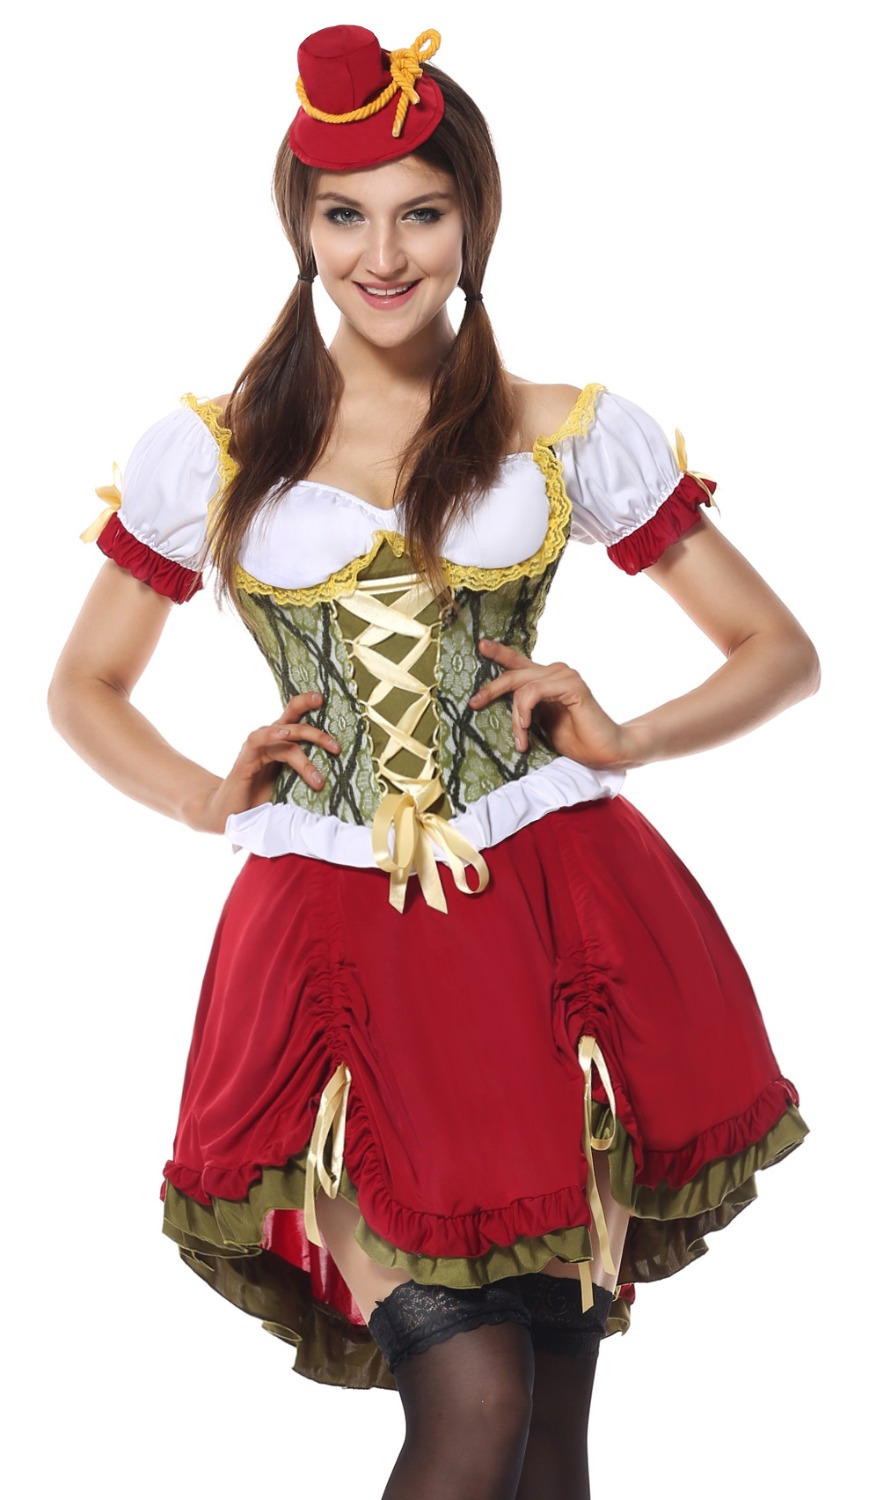 Hot Sexy Womens Traditional Beer Girl Costume Fancy dress Women French Maid Halloween Costumes oktoberfest Cosplay costume-in Sexy Costumes from Novelty ...  sc 1 st  AliExpress.com & Hot Sexy Womens Traditional Beer Girl Costume Fancy dress Women ...